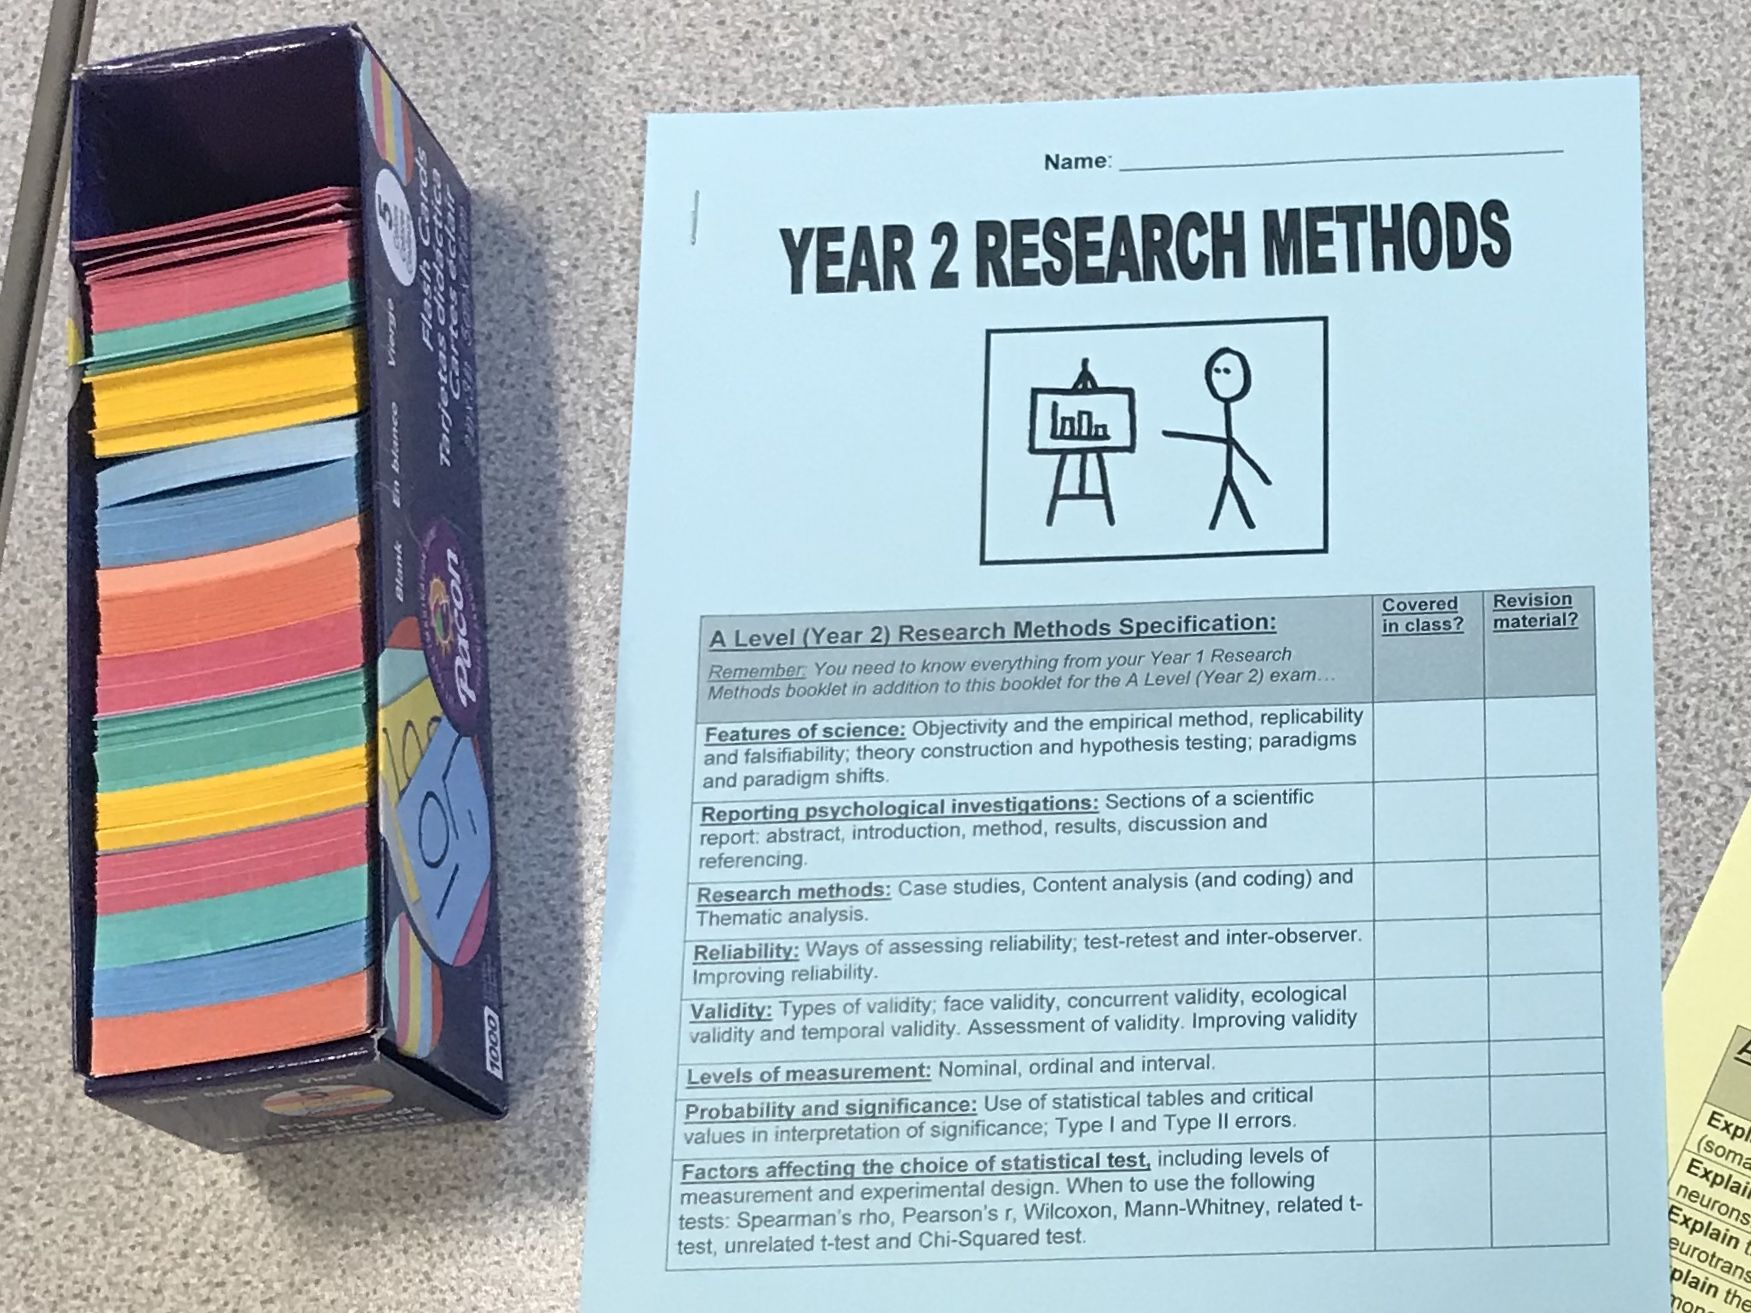 Research Methods (A Level/Year 2) Booklet